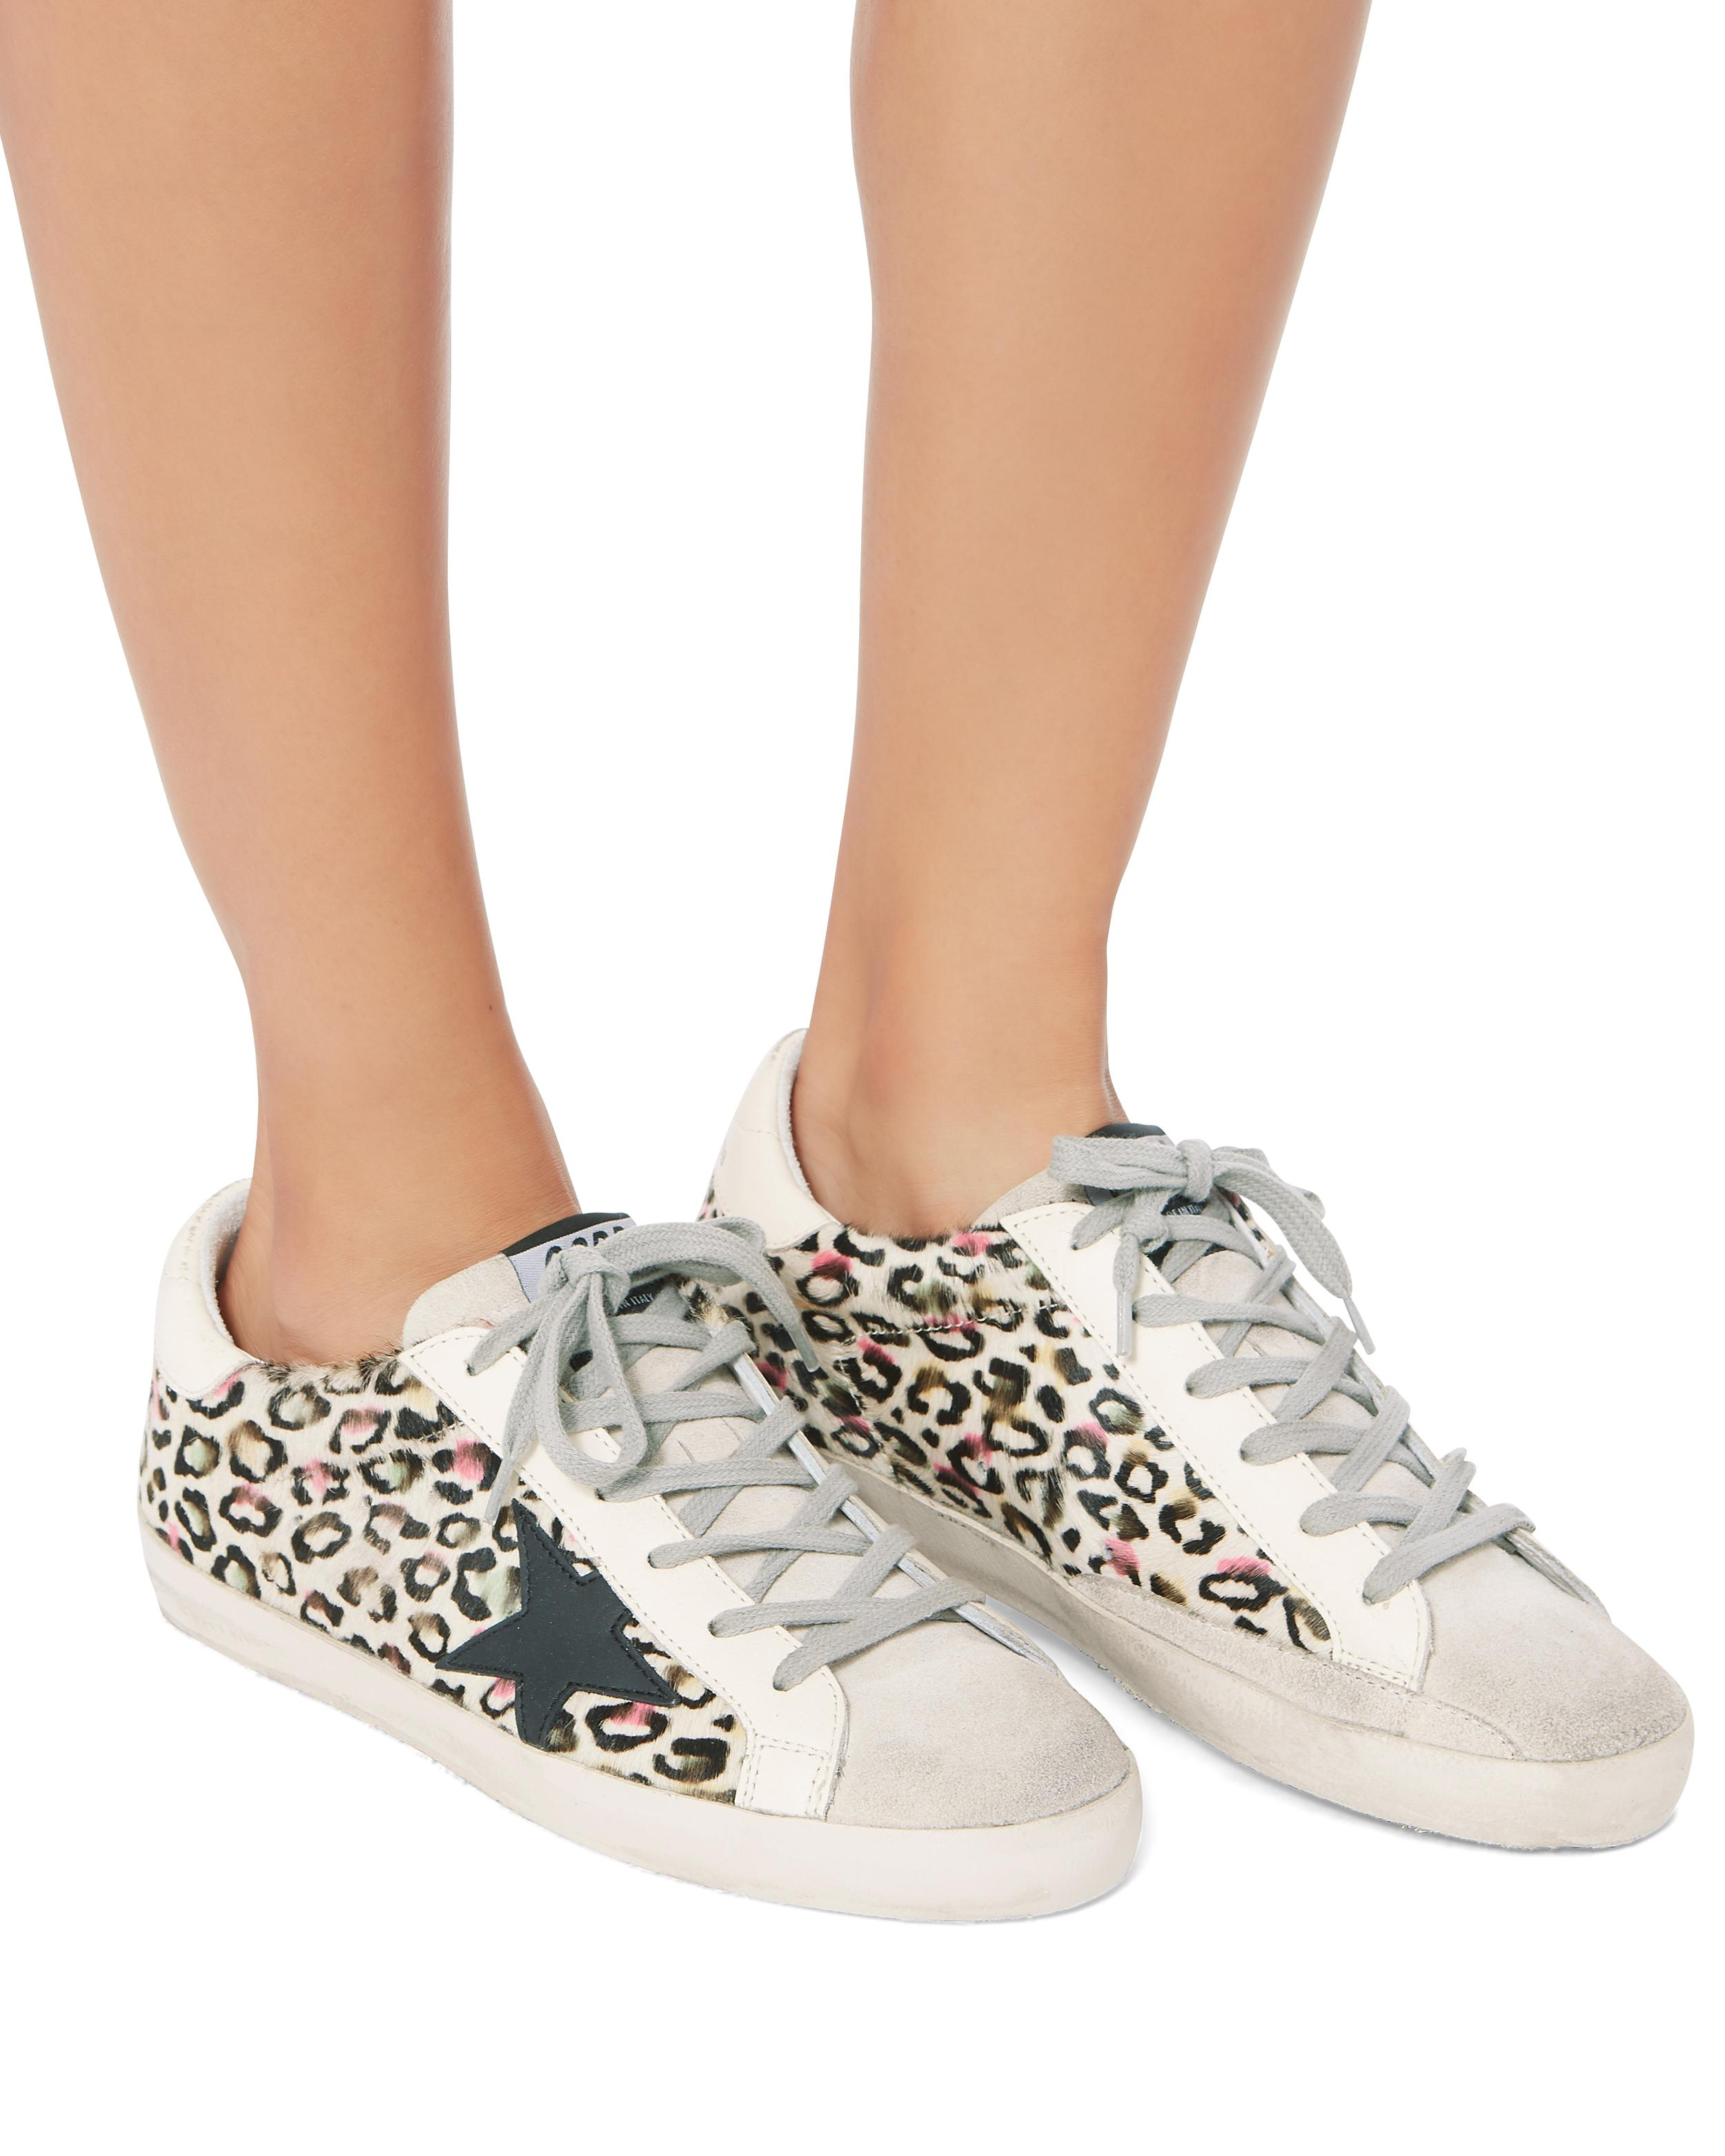 newest ed409 06ad1 Golden Goose Deluxe Brand Superstar Animal Print Sneakers - Lyst